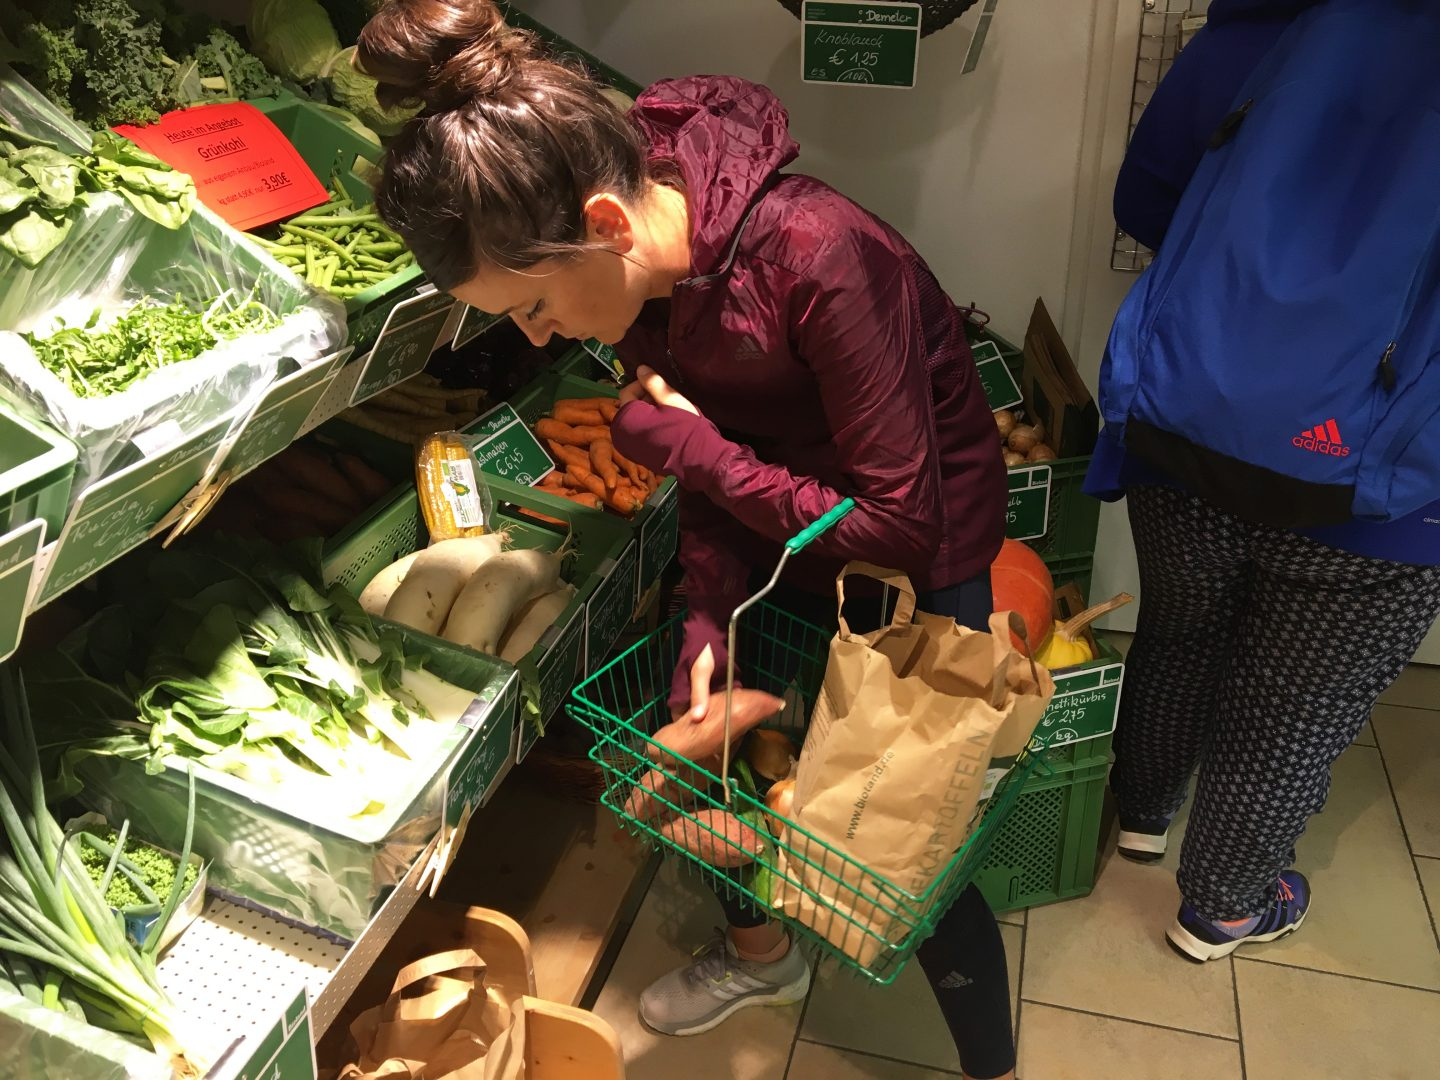 A woman is putting different vegetables in her shopping bag in a supermarket. employees, sustainability, learning, purpose, career advice, GamePlan A